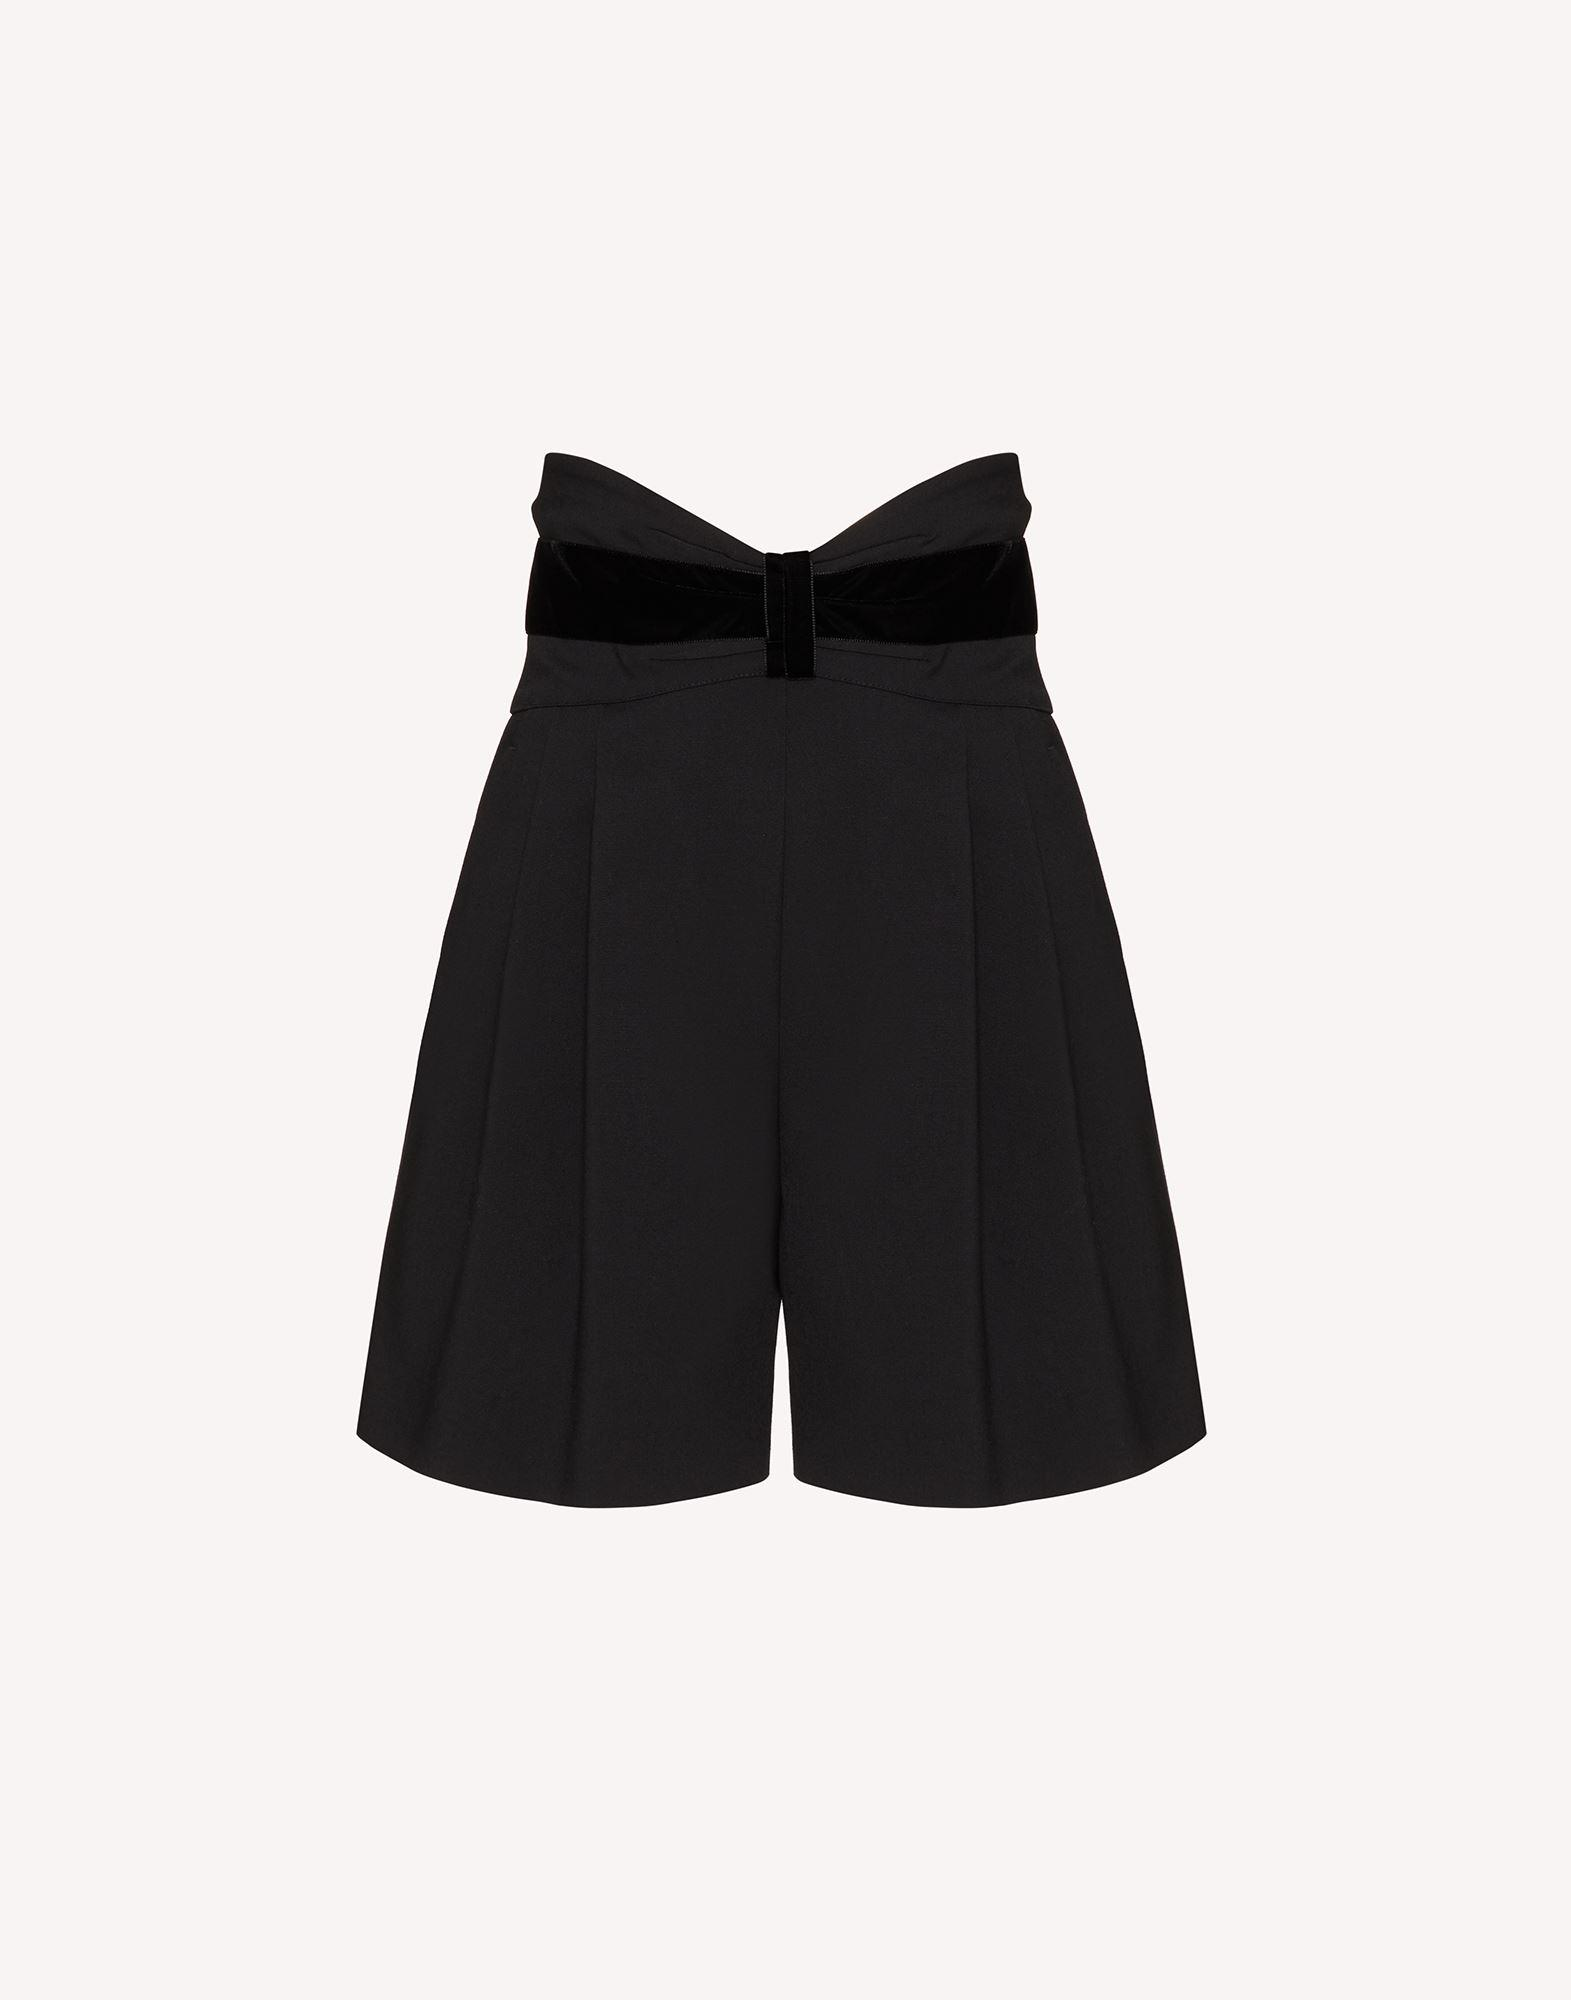 TUXEDO BOW DETAIL WOOL STRETCH REPS SHORTS 4